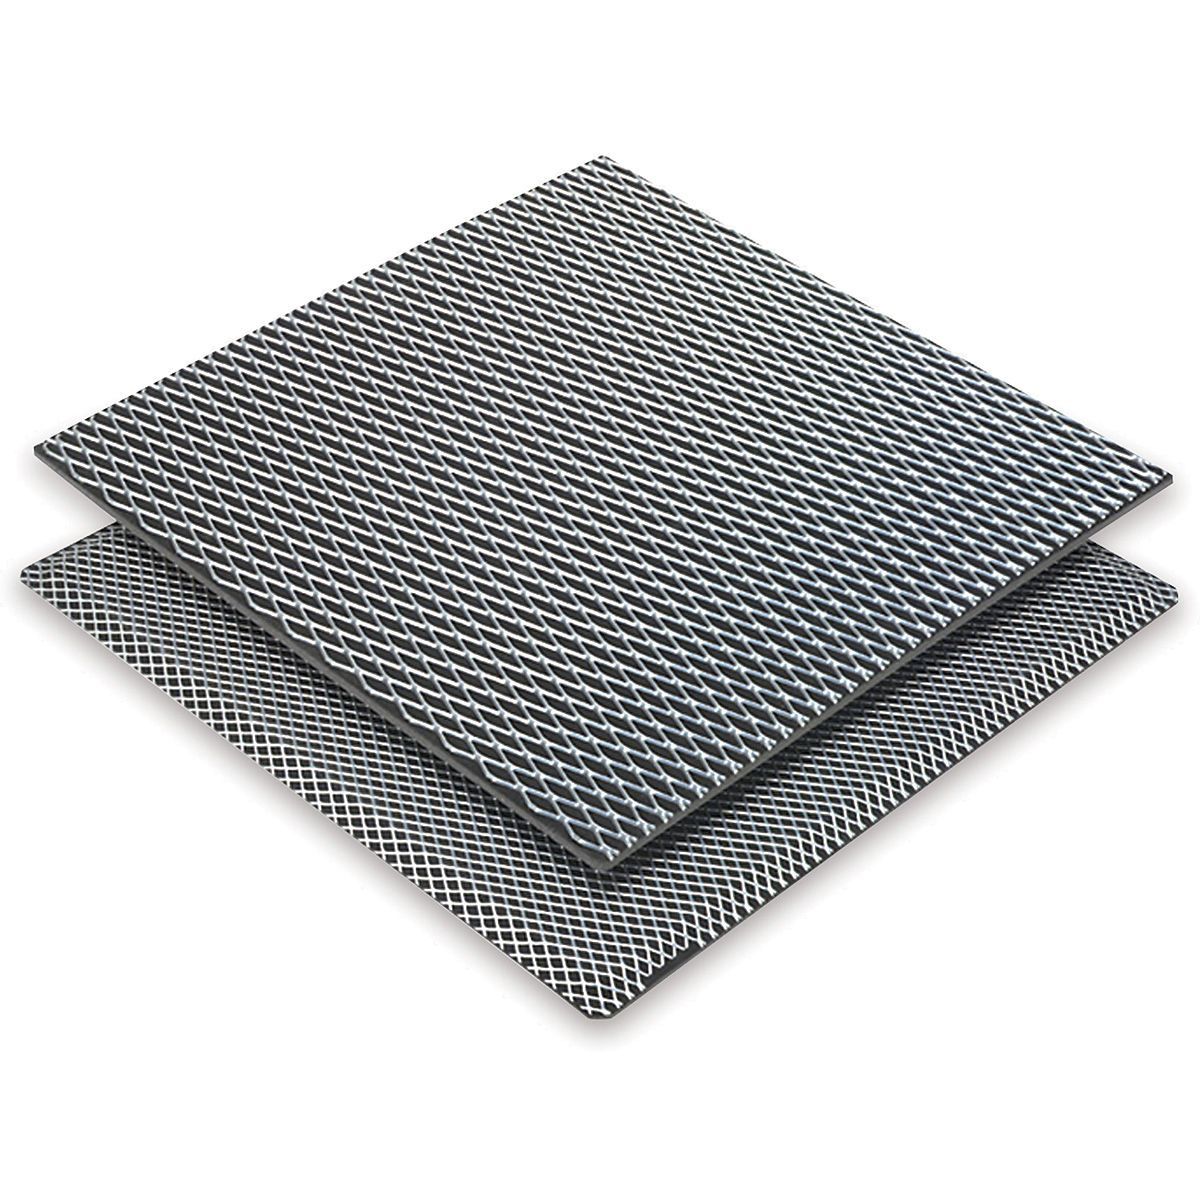 Sonex squareline acoustic ceiling tiles let you create a ceiling we have a variety of acoustical ceiling tiles for noise and sound control tiles for dropping into a standard ceiling grid or glued directly to the ceiling doublecrazyfo Gallery